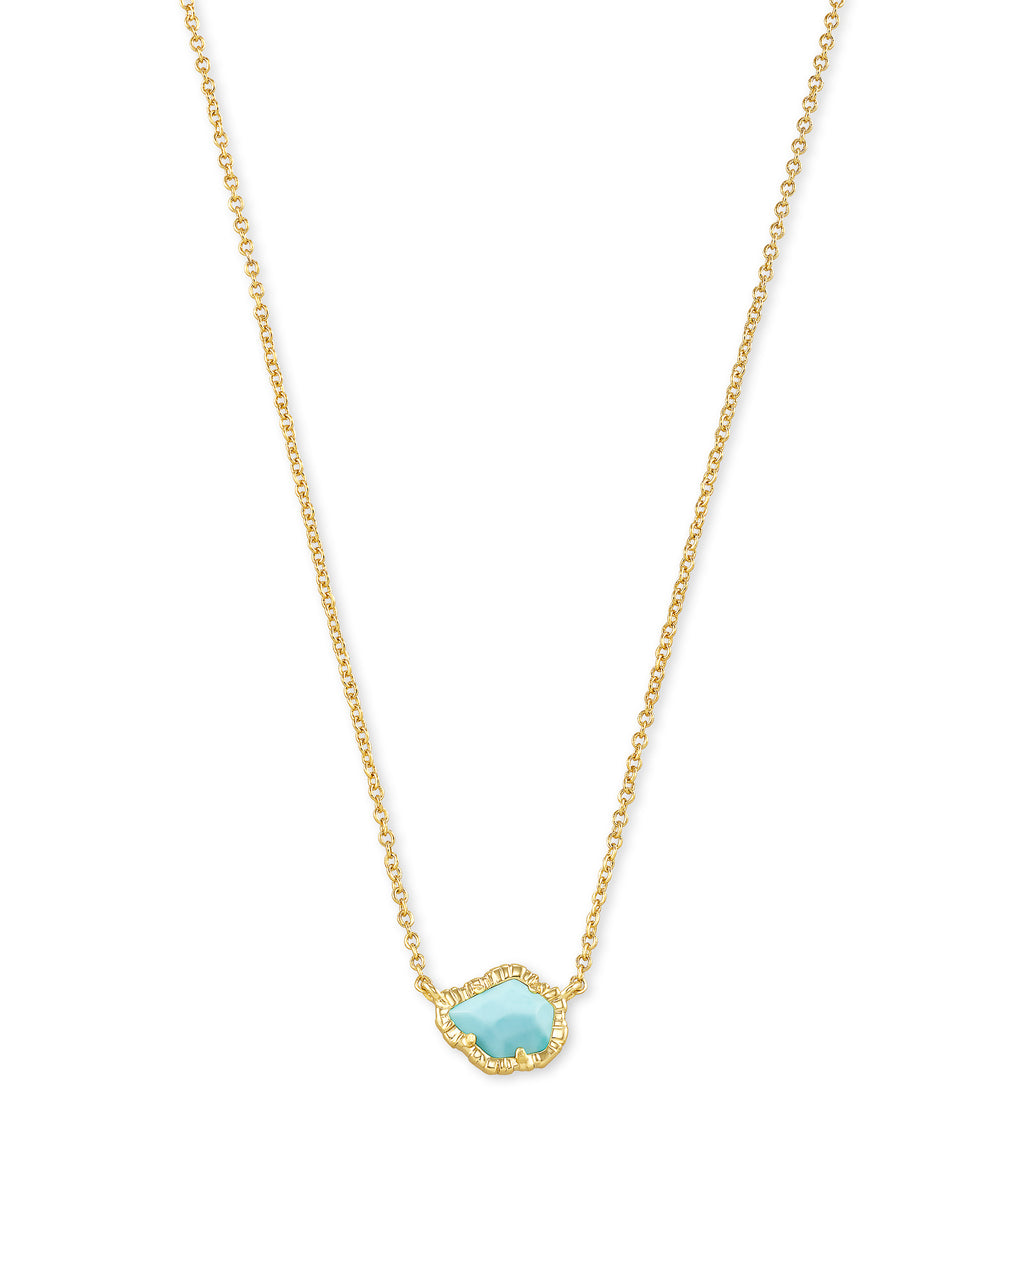 Tessa Small Pendant Necklace in Gold Light Blue Magnesite